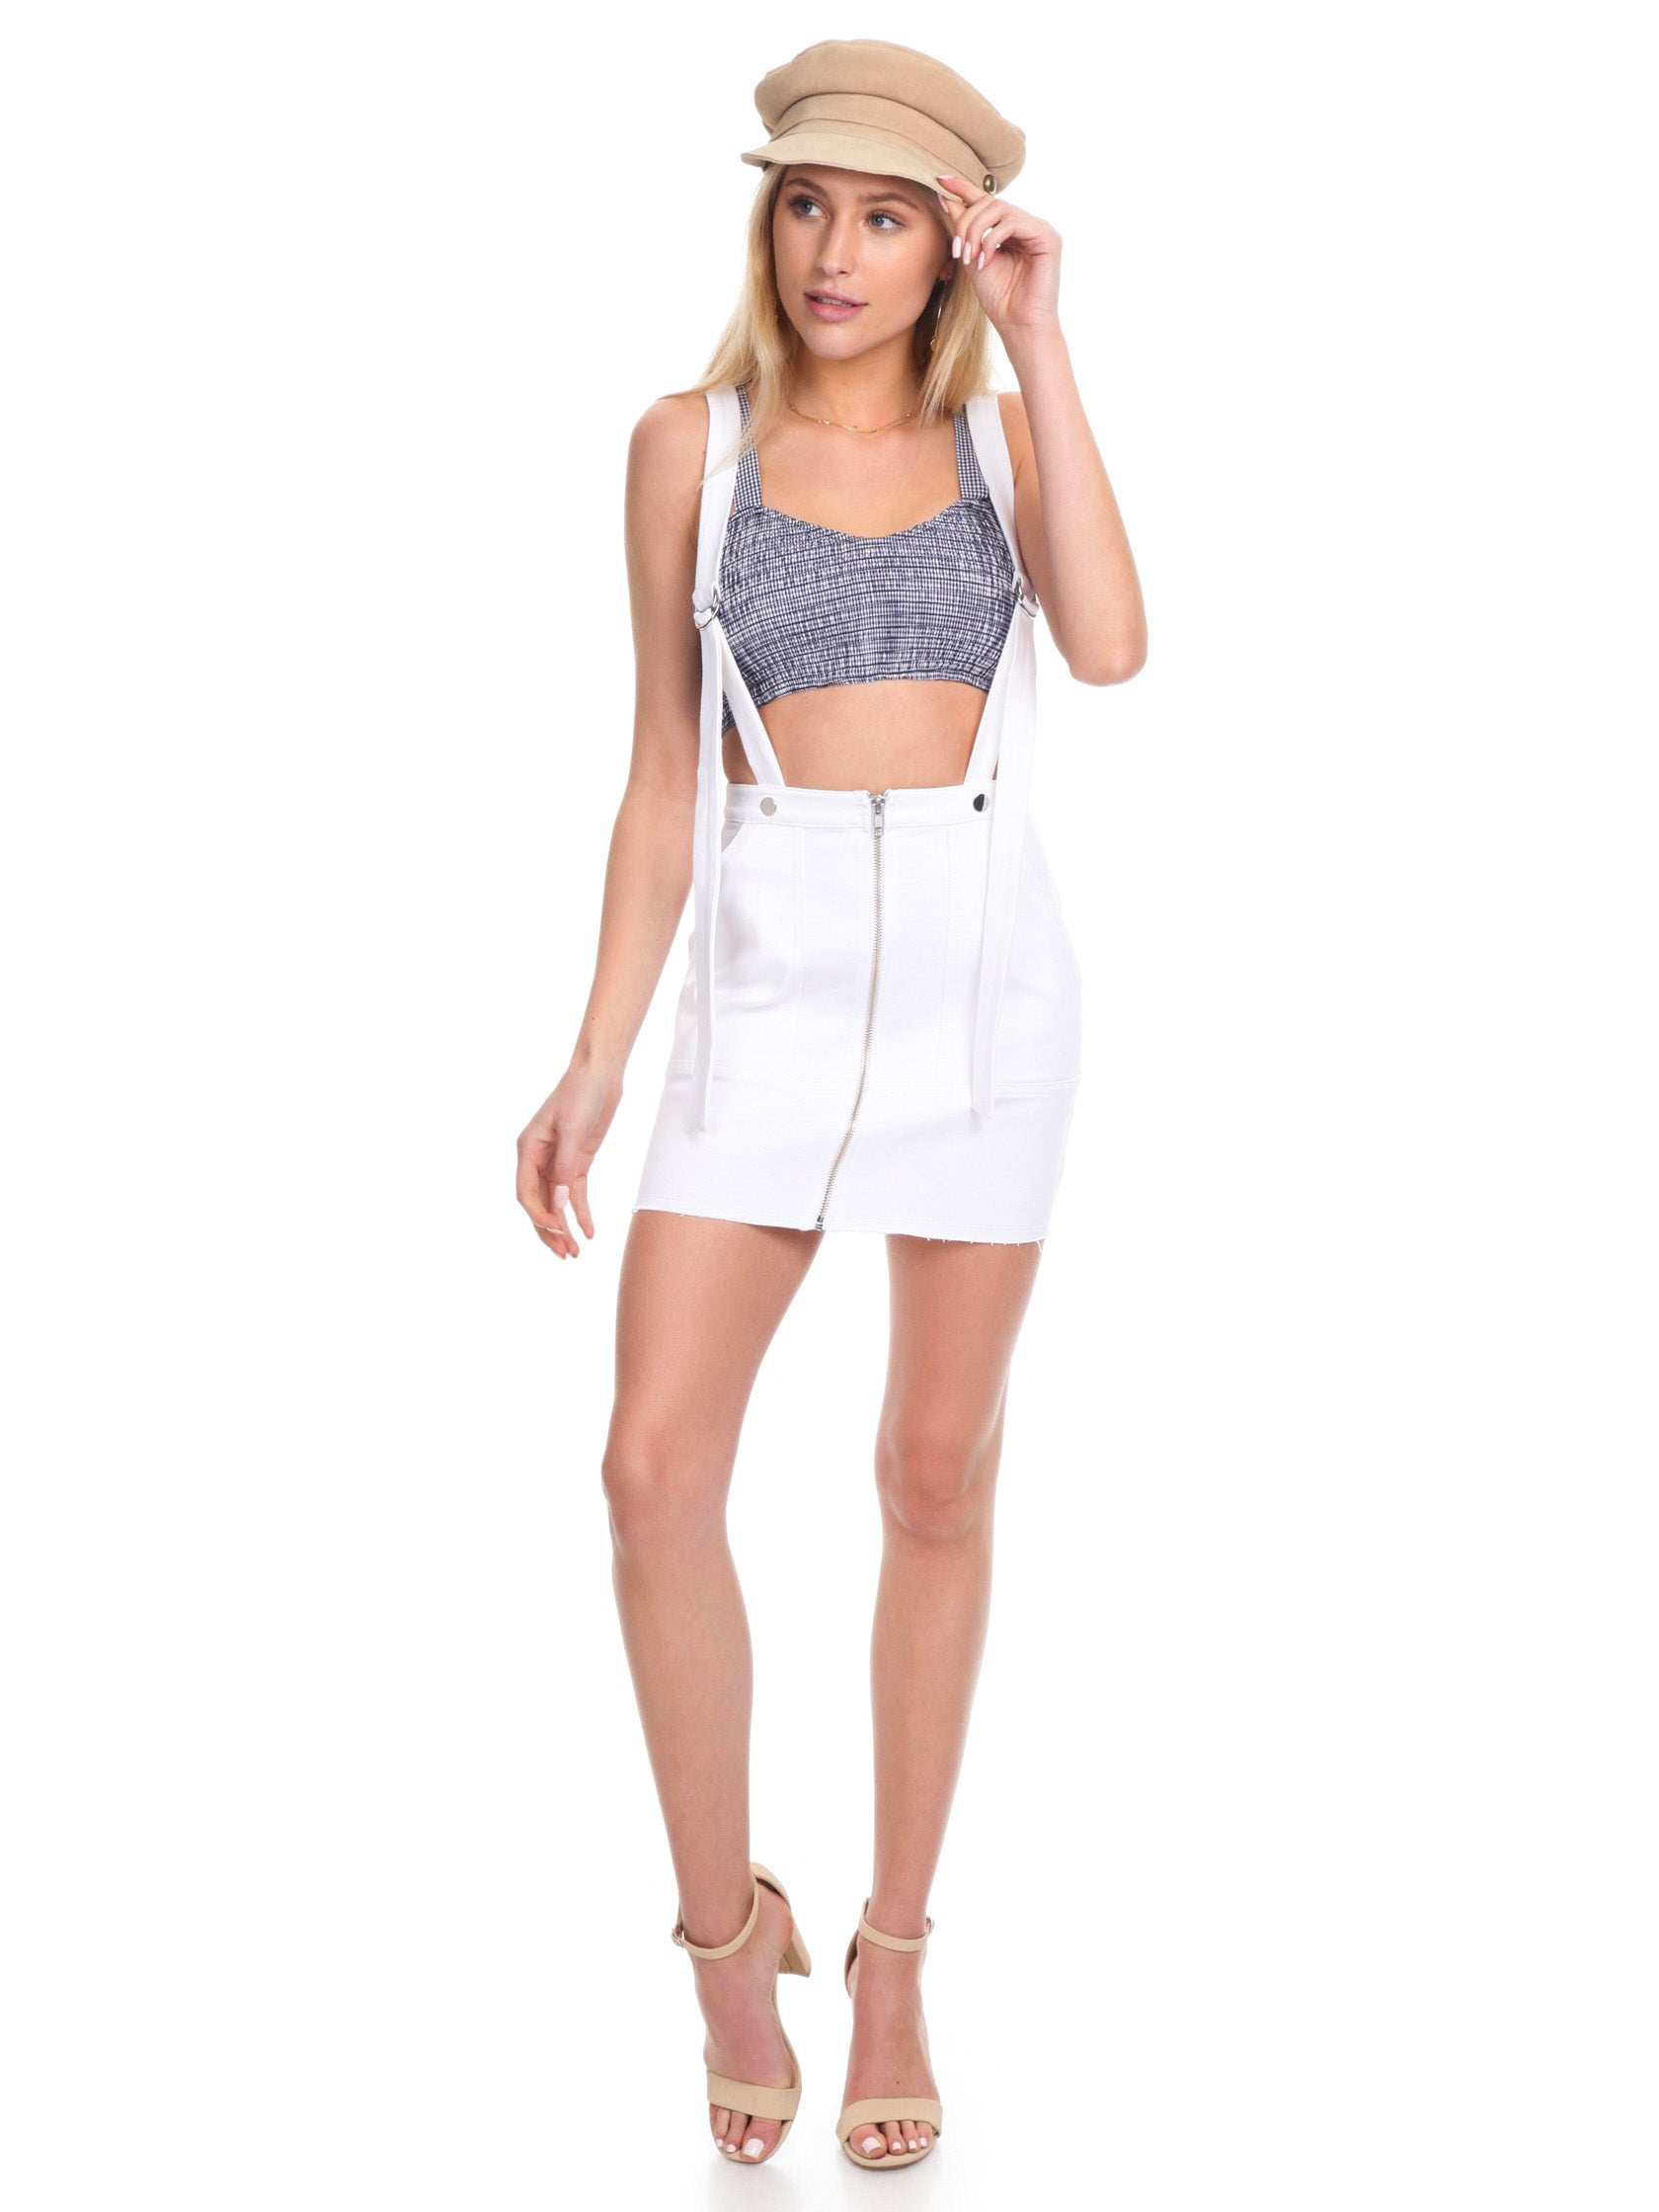 50c5a58c77 Women outfit in a skirt rental from For Love   Lemons called Monika  Overalls Mini Skirt